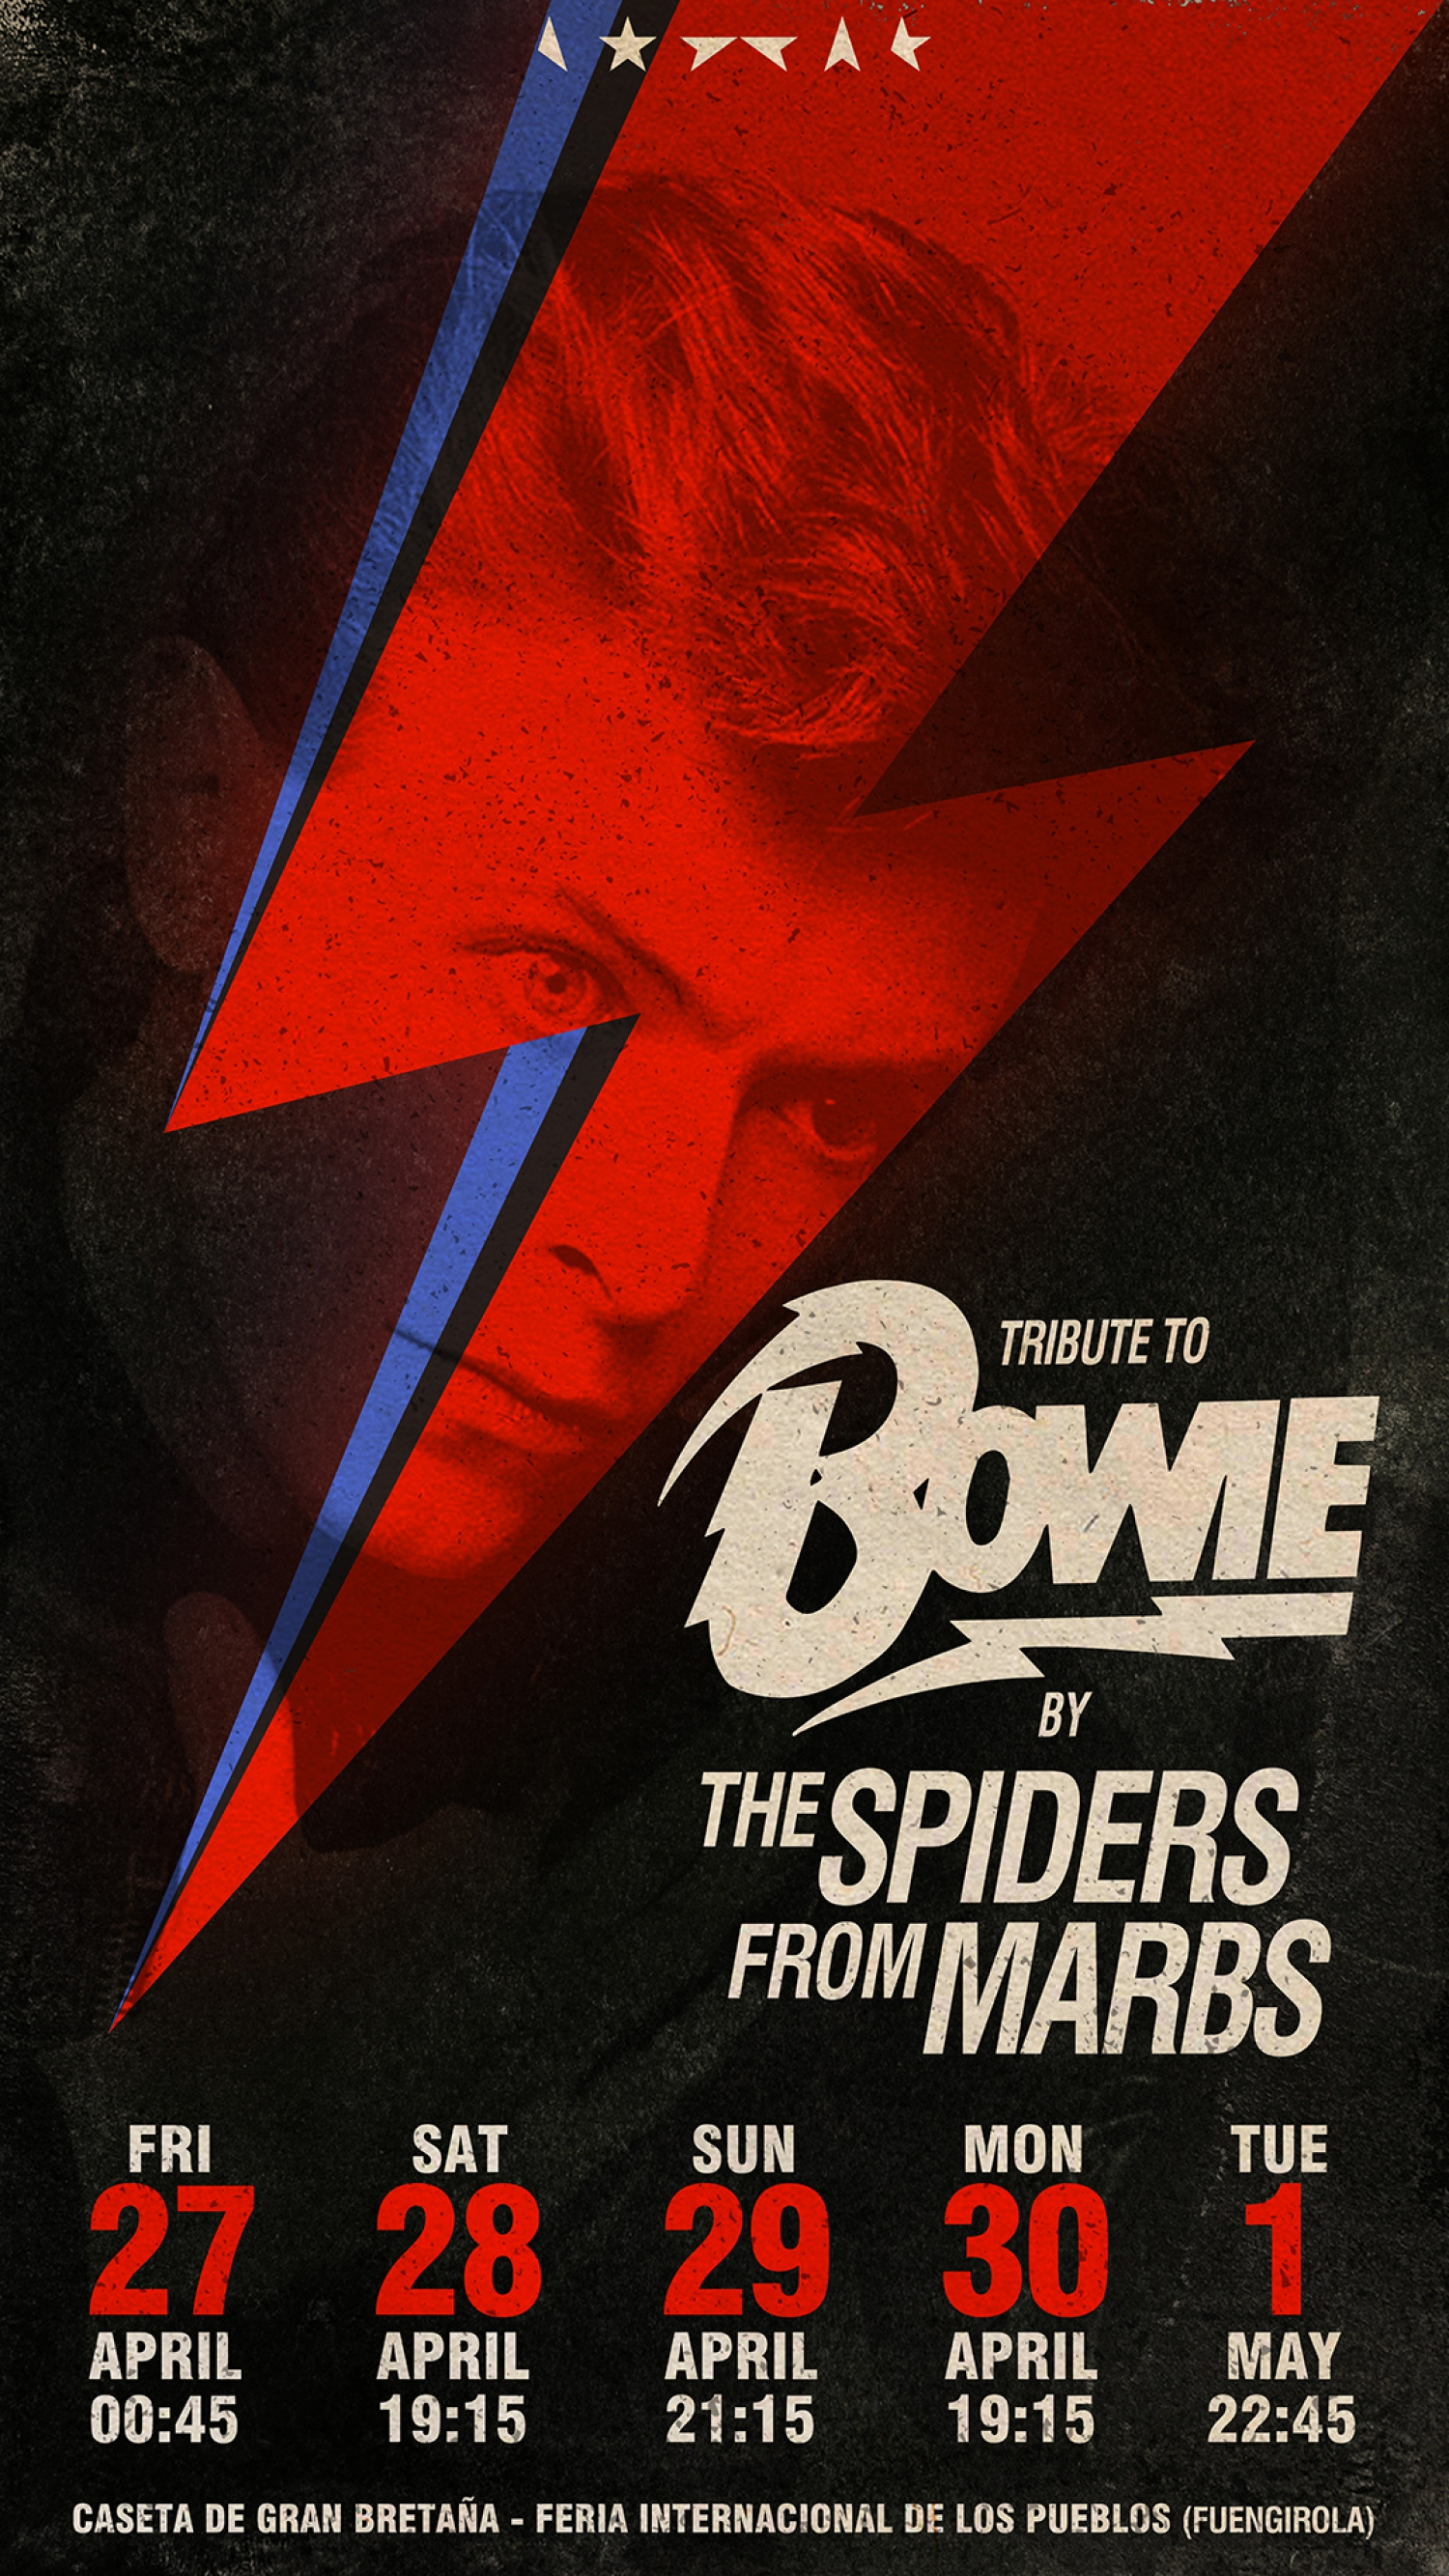 David Bowie tribute by the Spiders from Marbs